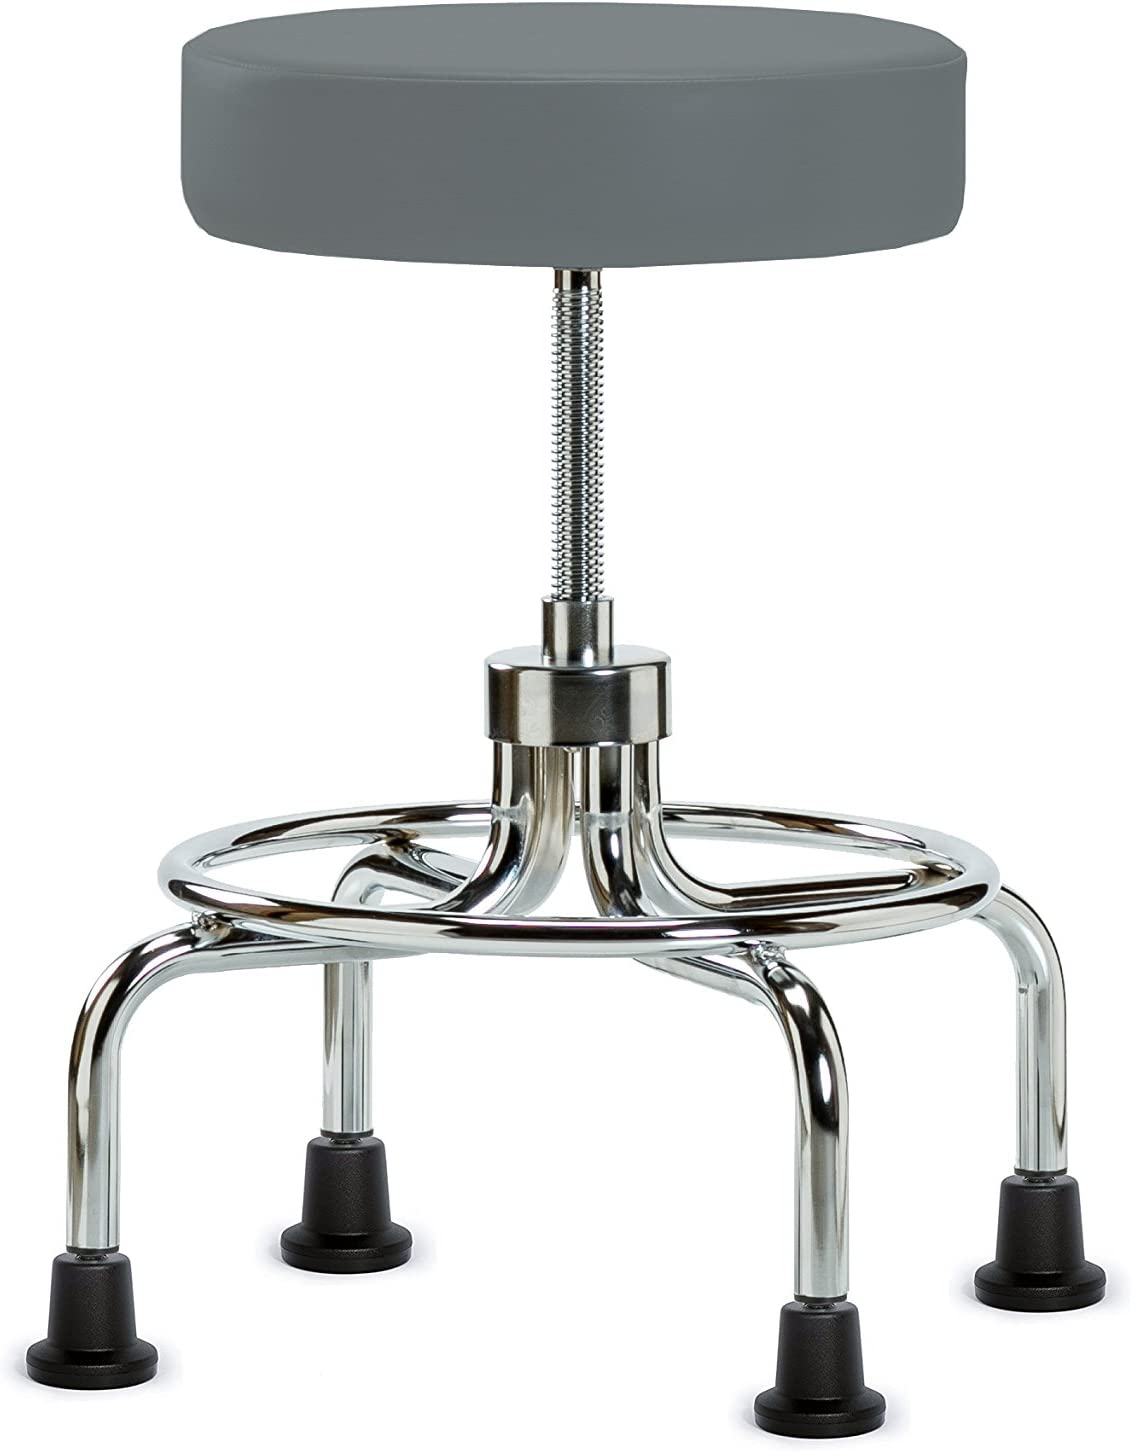 Sales for sale Perch Retro Rolling Exam Stool OFFicial site Caps Fabr with Stationary Cinder